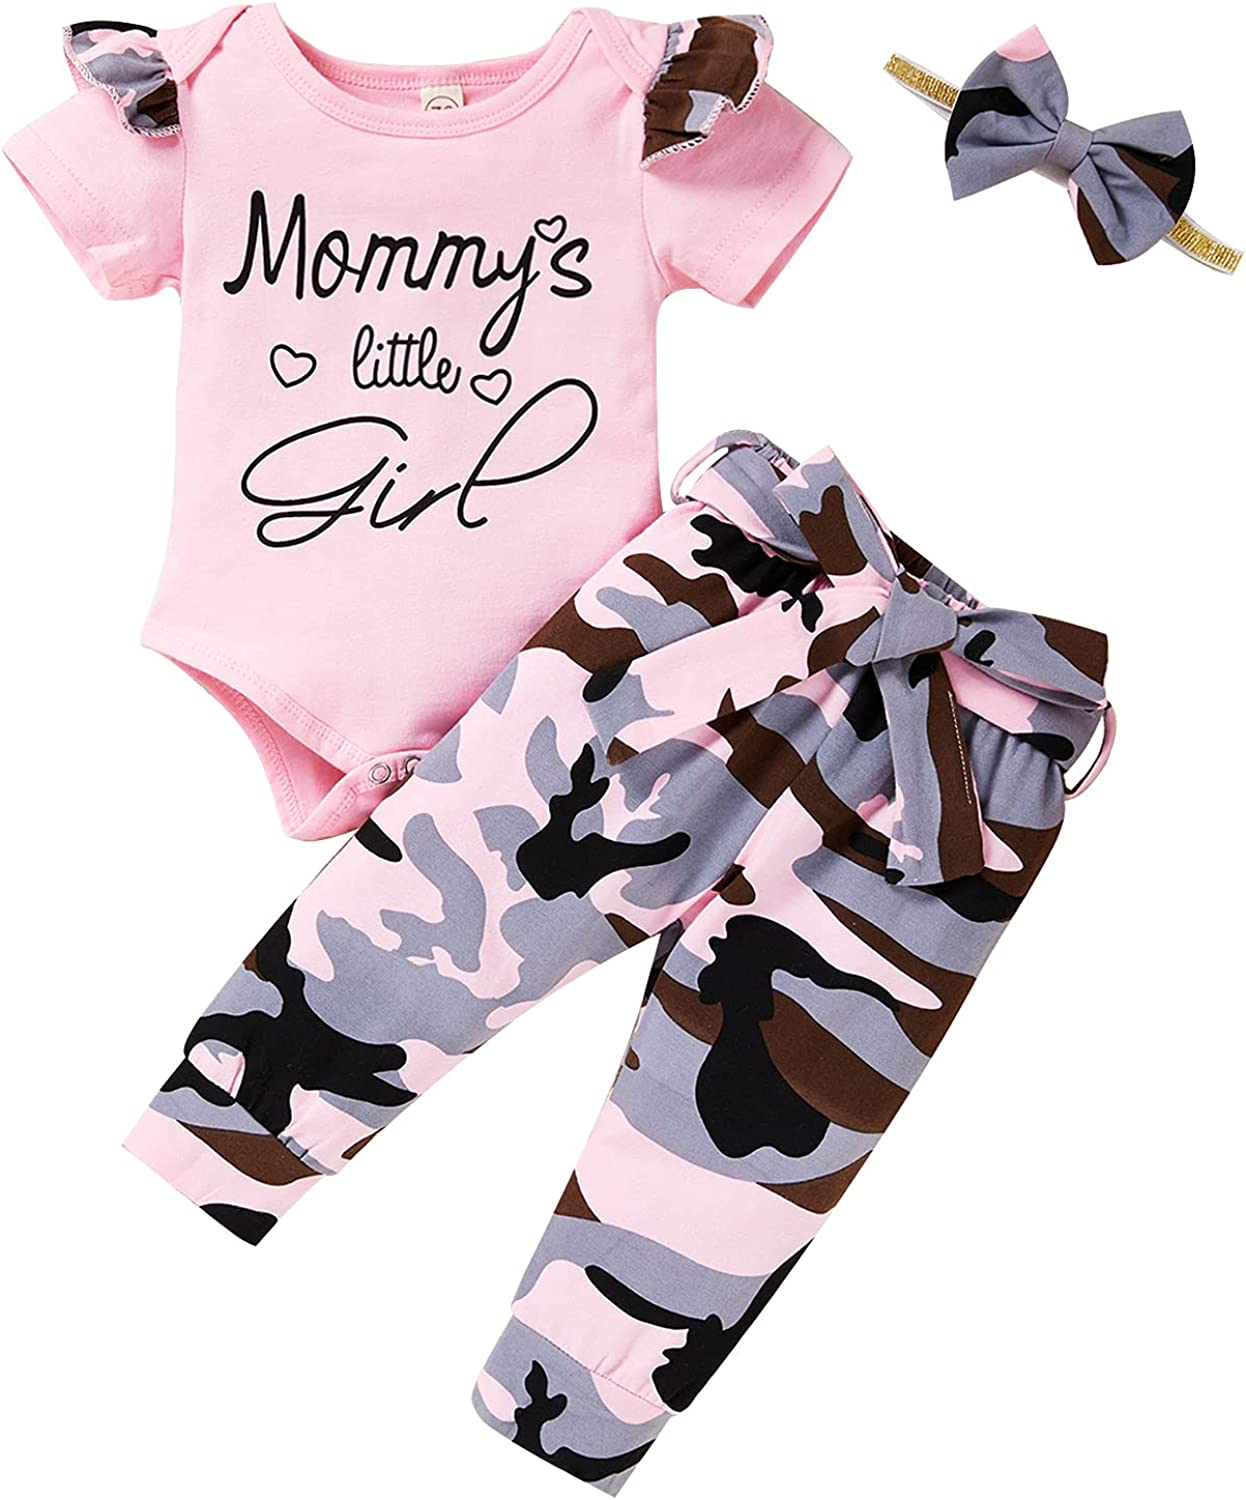 Viworld Newborn Baby Girl Clothes Ruffled Short Sleeve Letter Romper+Camouflage Pants+Headband 3Pcs Summer Outfits